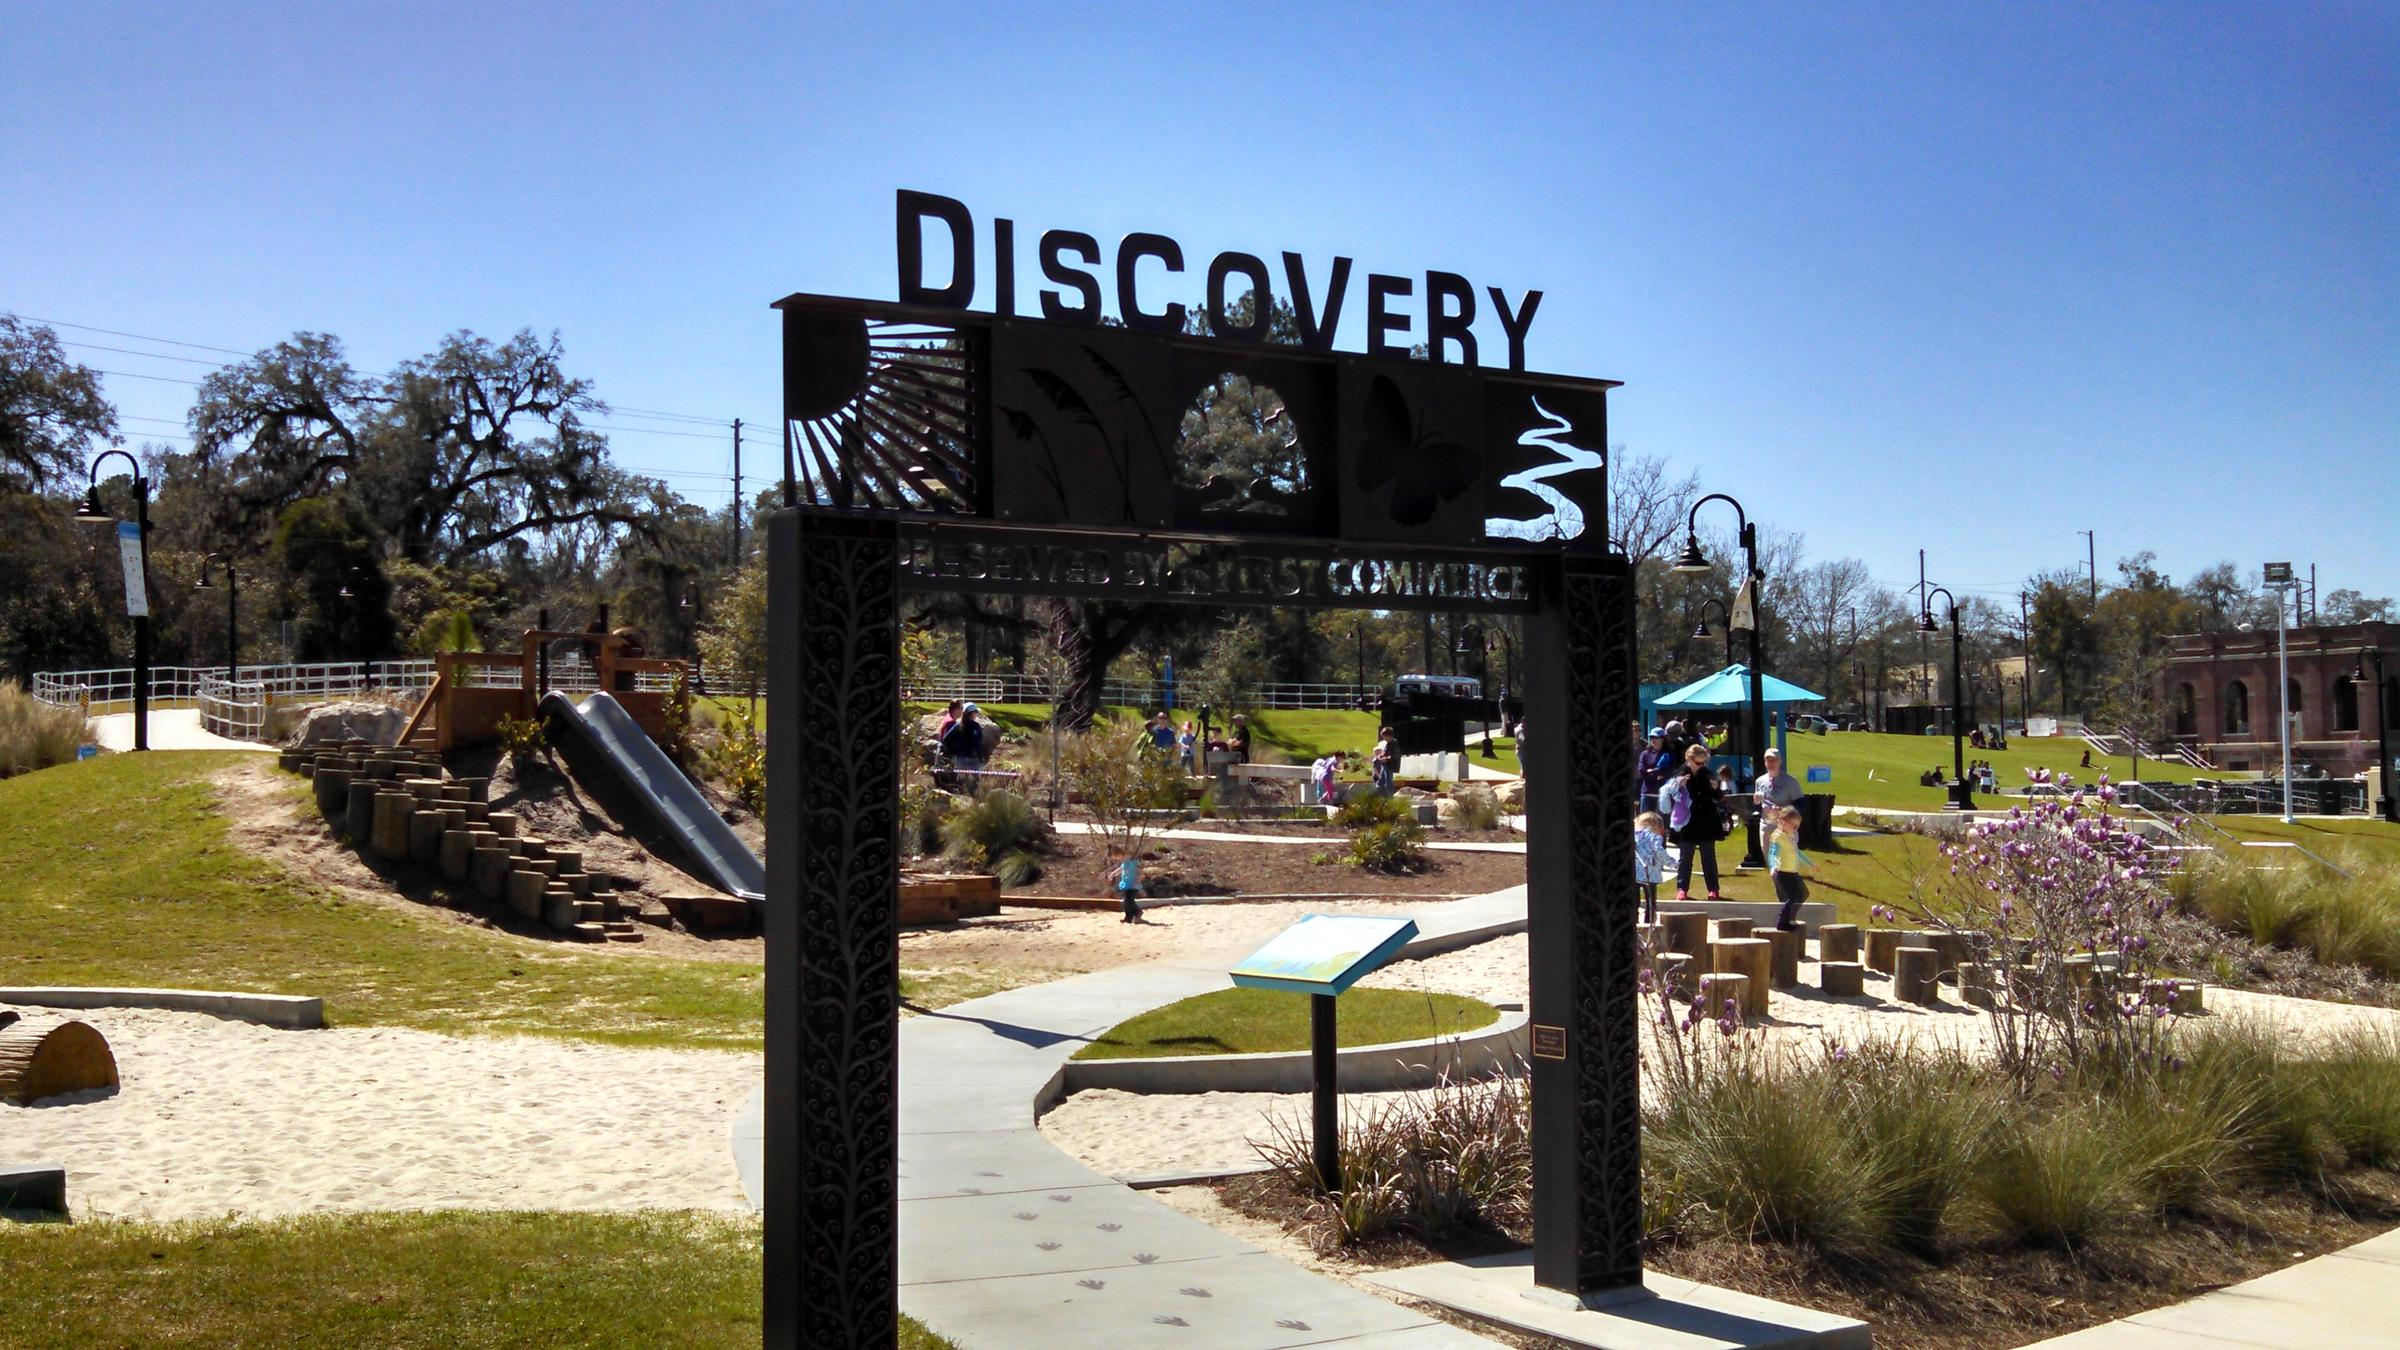 Discovery At Cascades Park Marks First Year Wfsu